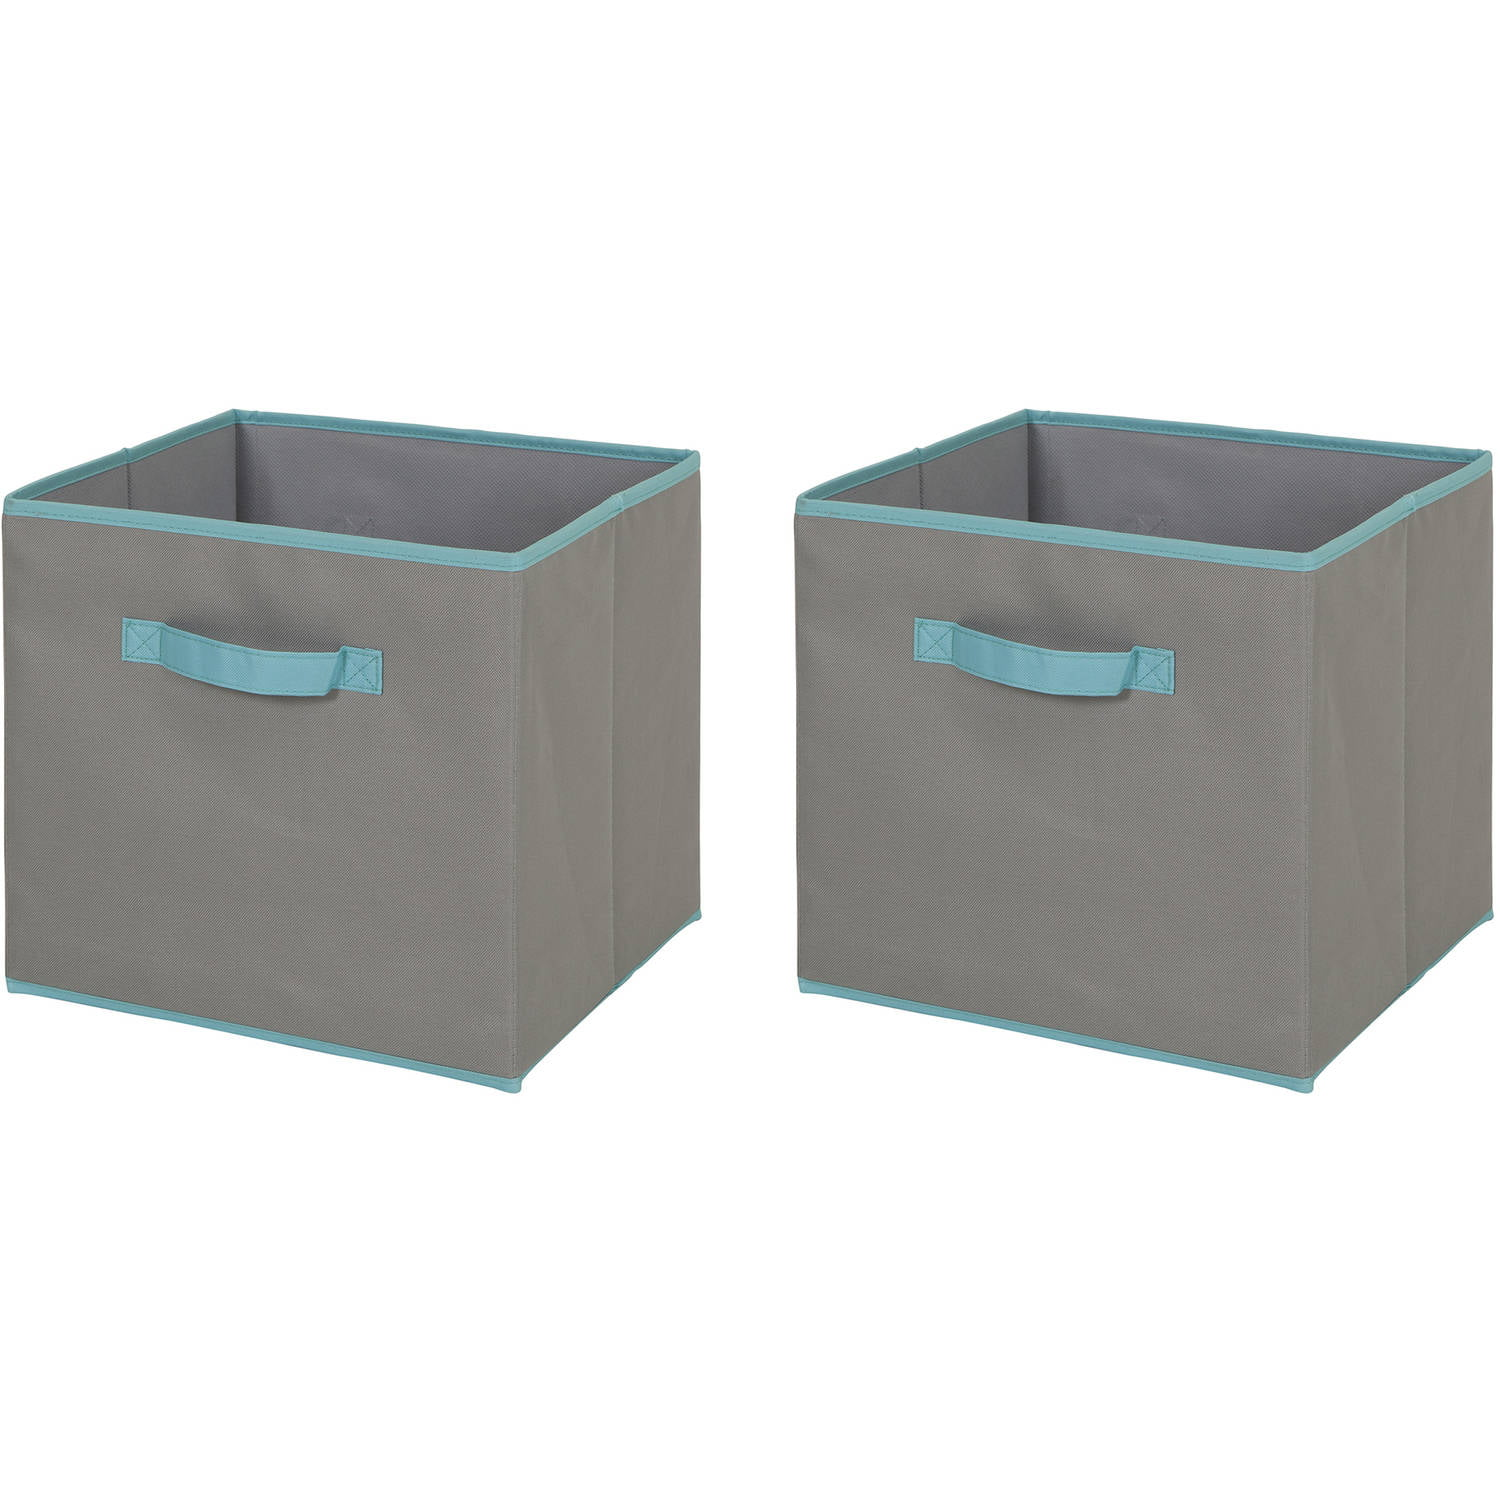 Superieur South Shore Fabric Storage Bin, 2 Pack, Large Size, Gray And Turquoise    Walmart.com